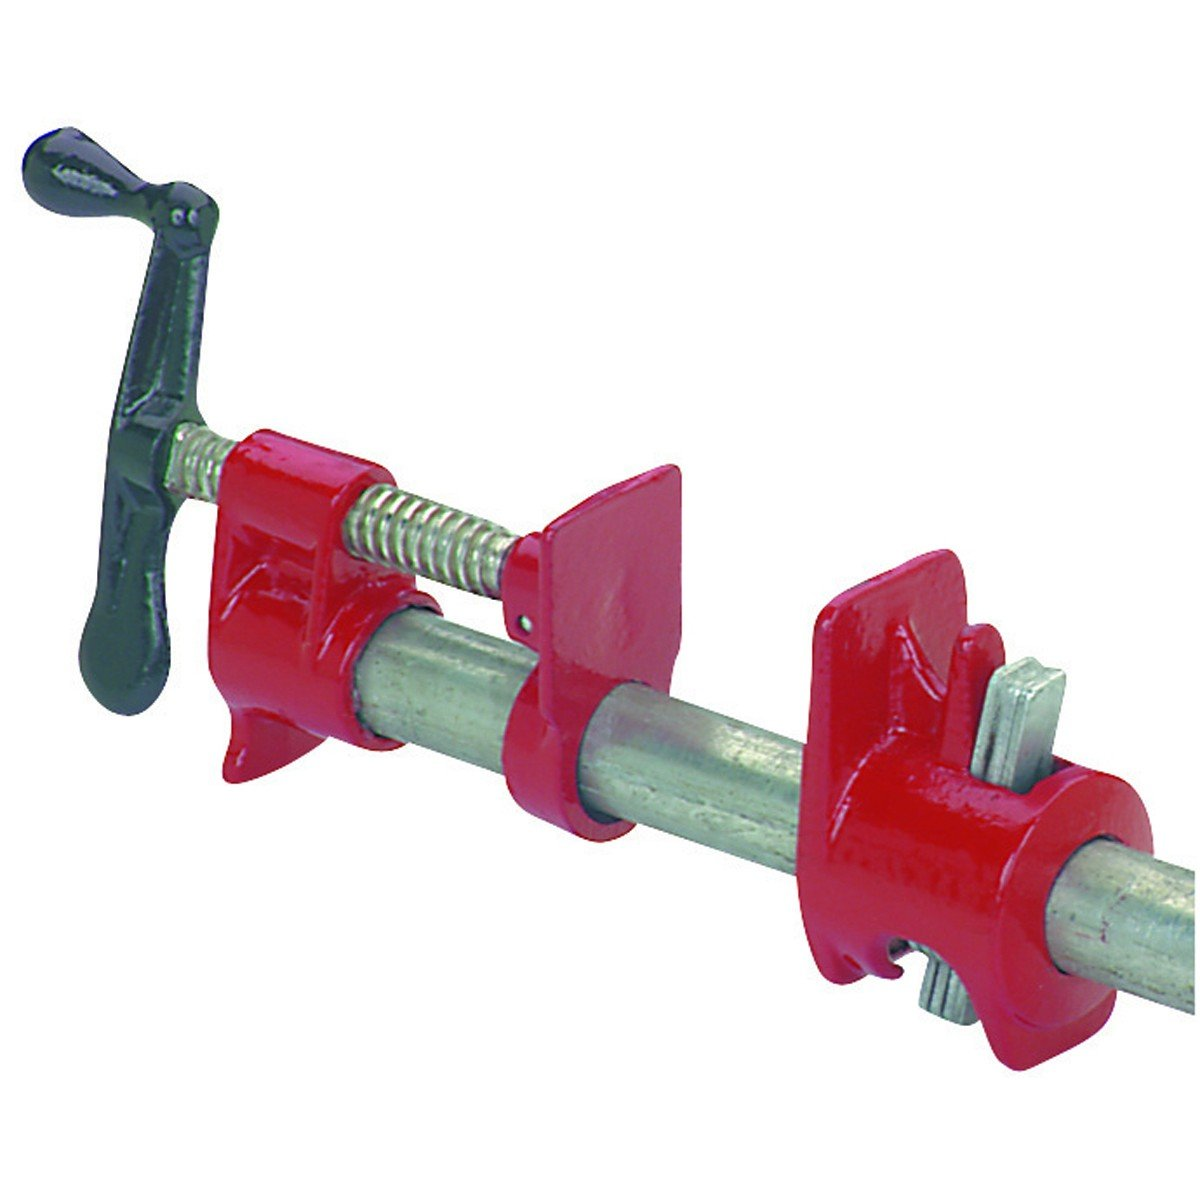 3/4 In Heavy Duty Cast Iron Pipe Clamp 2 Pc -USATM